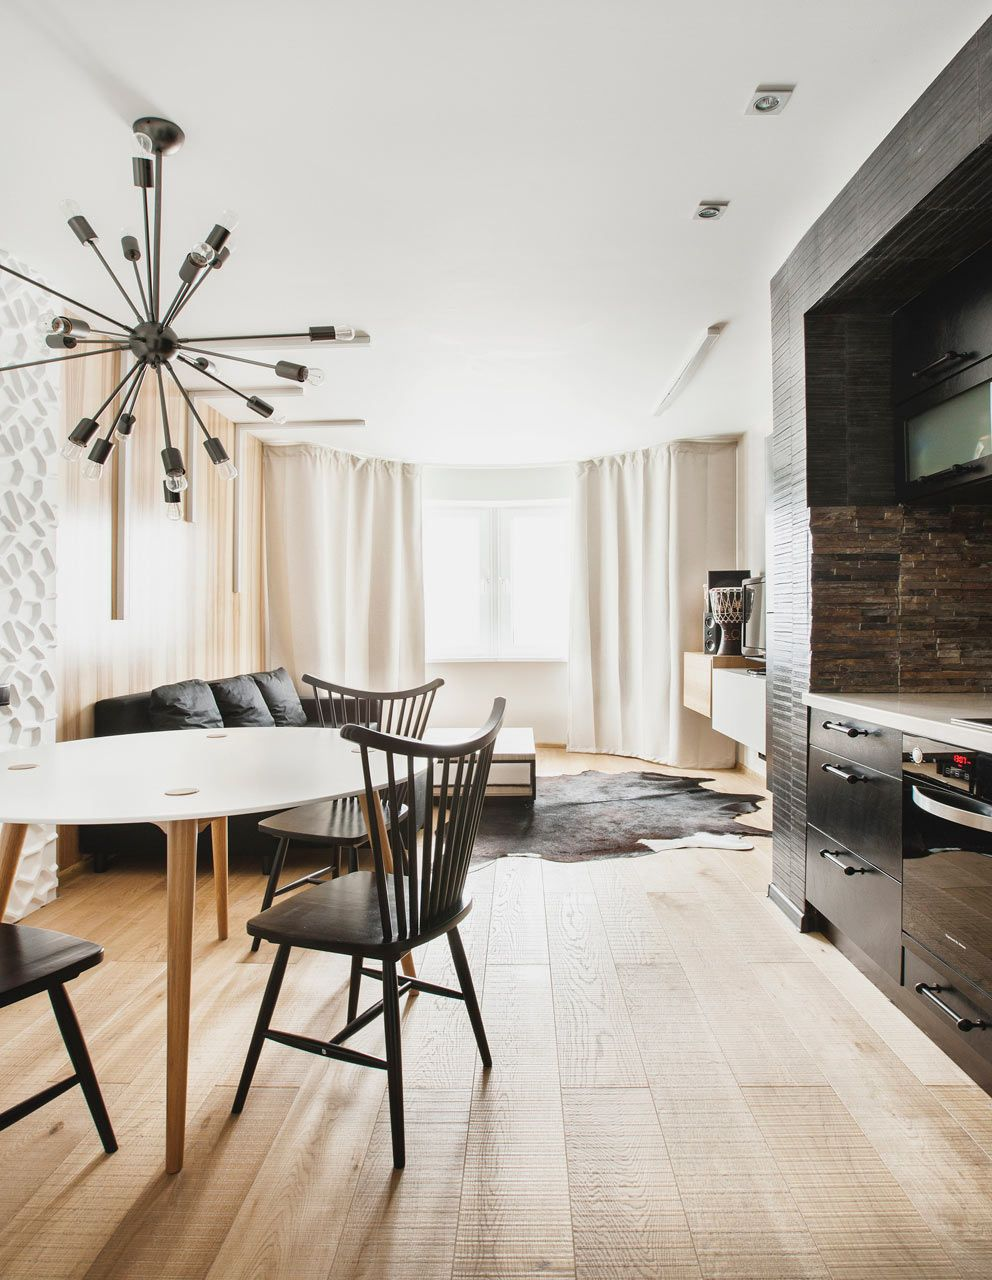 An Apartment with Interiors Inspired by Travels to Africa